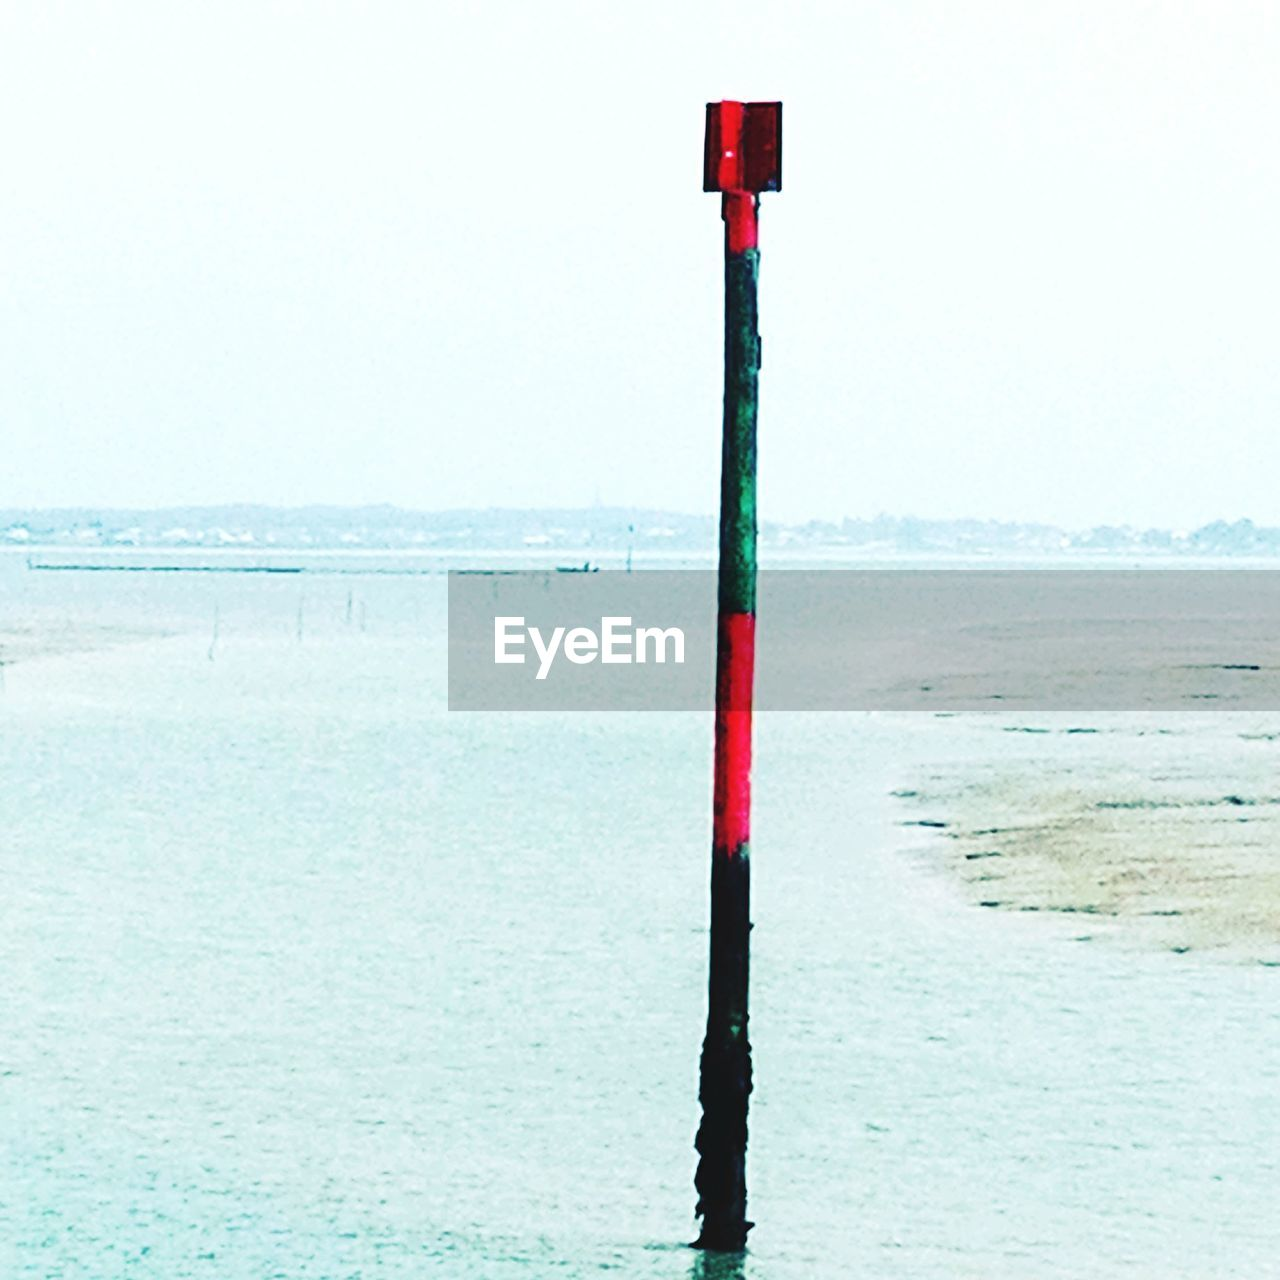 water, sea, sky, horizon, horizon over water, scenics - nature, pole, nature, beauty in nature, tranquility, beach, land, day, red, tranquil scene, no people, clear sky, outdoors, non-urban scene, wooden post